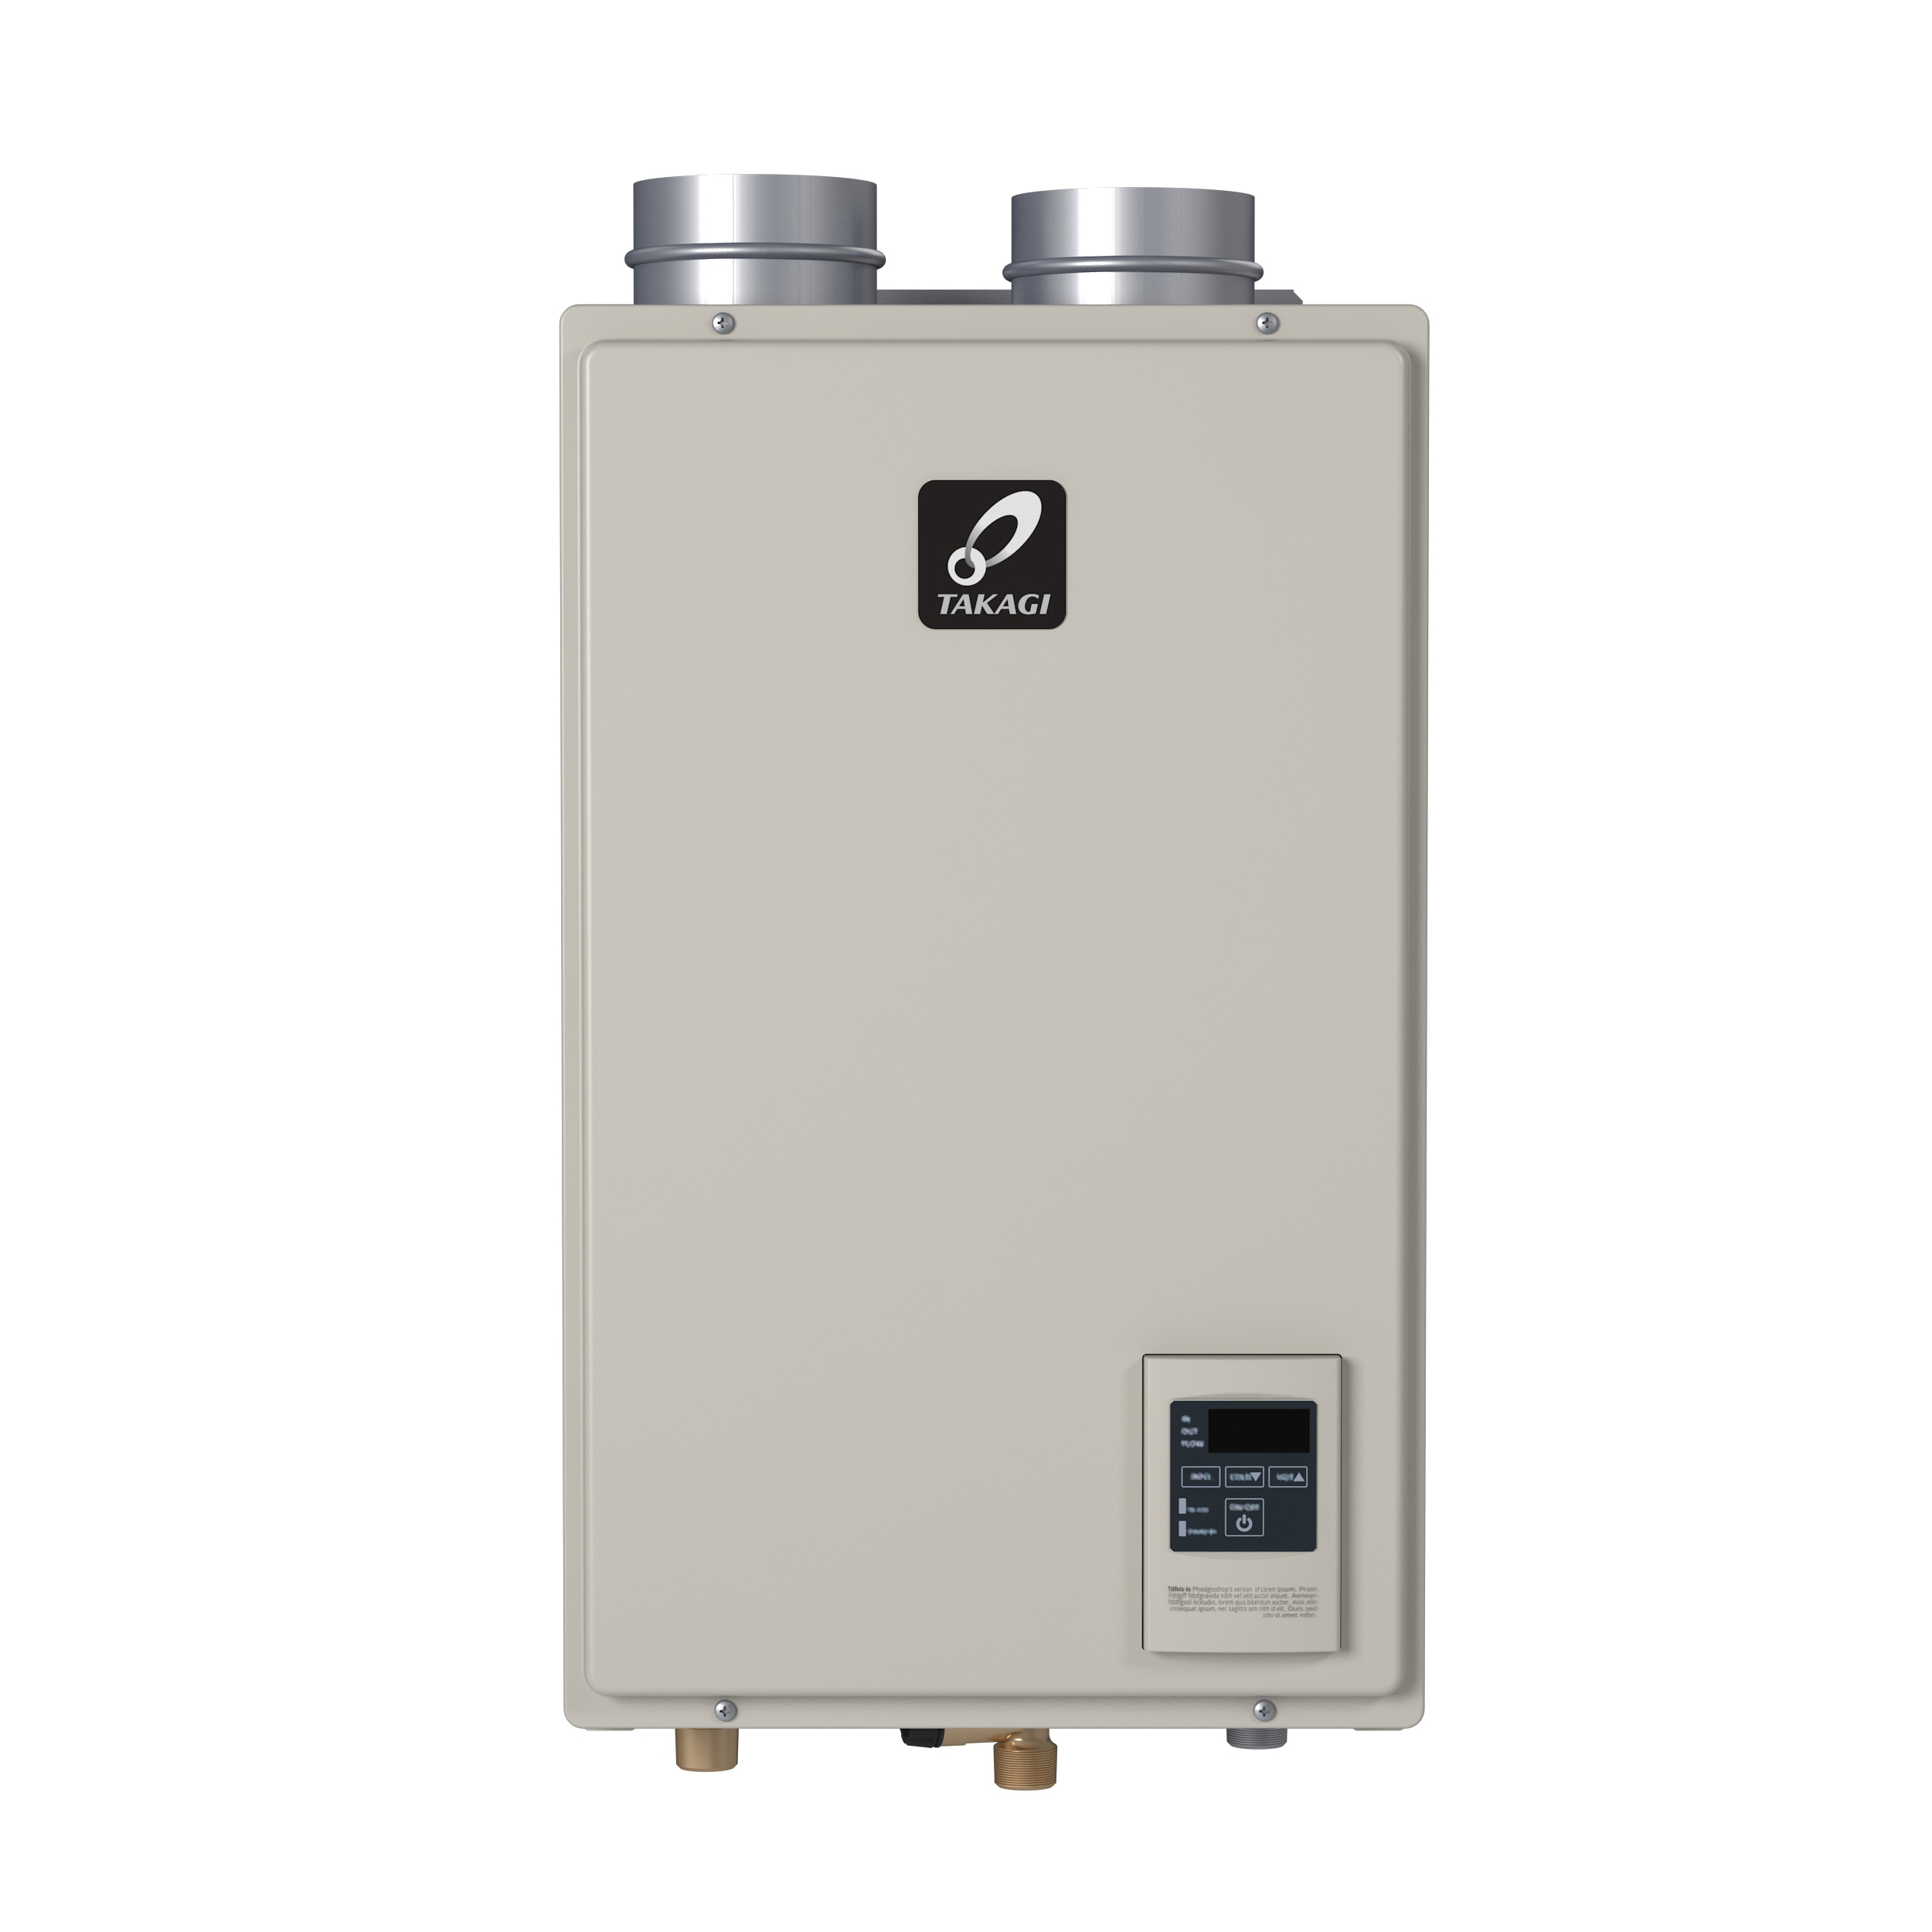 Takagi 100123497 H3M Tankless Water Heater, Natural Gas Fuel, 120000 Btu/hr, Indoor, Condensing, 6.6 gpm, 4 in Direct Vent, 0.9, Residential